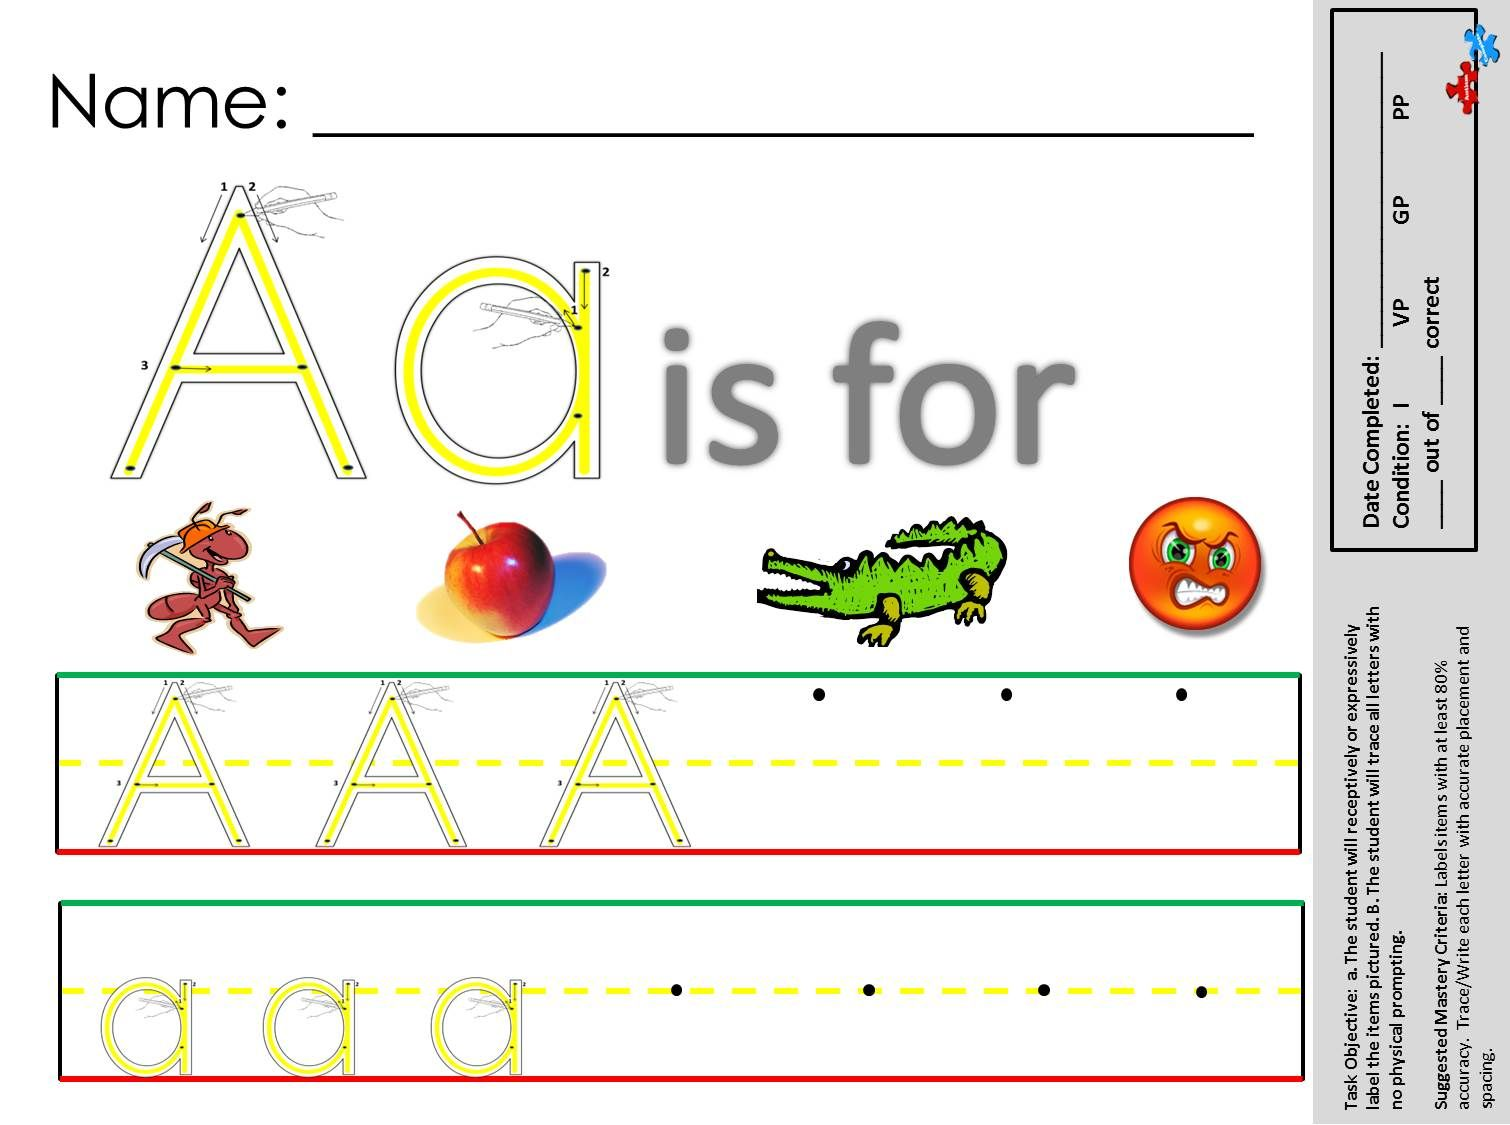 small resolution of Find these and other great worksheets at autismcomplete.com   Autism  teaching